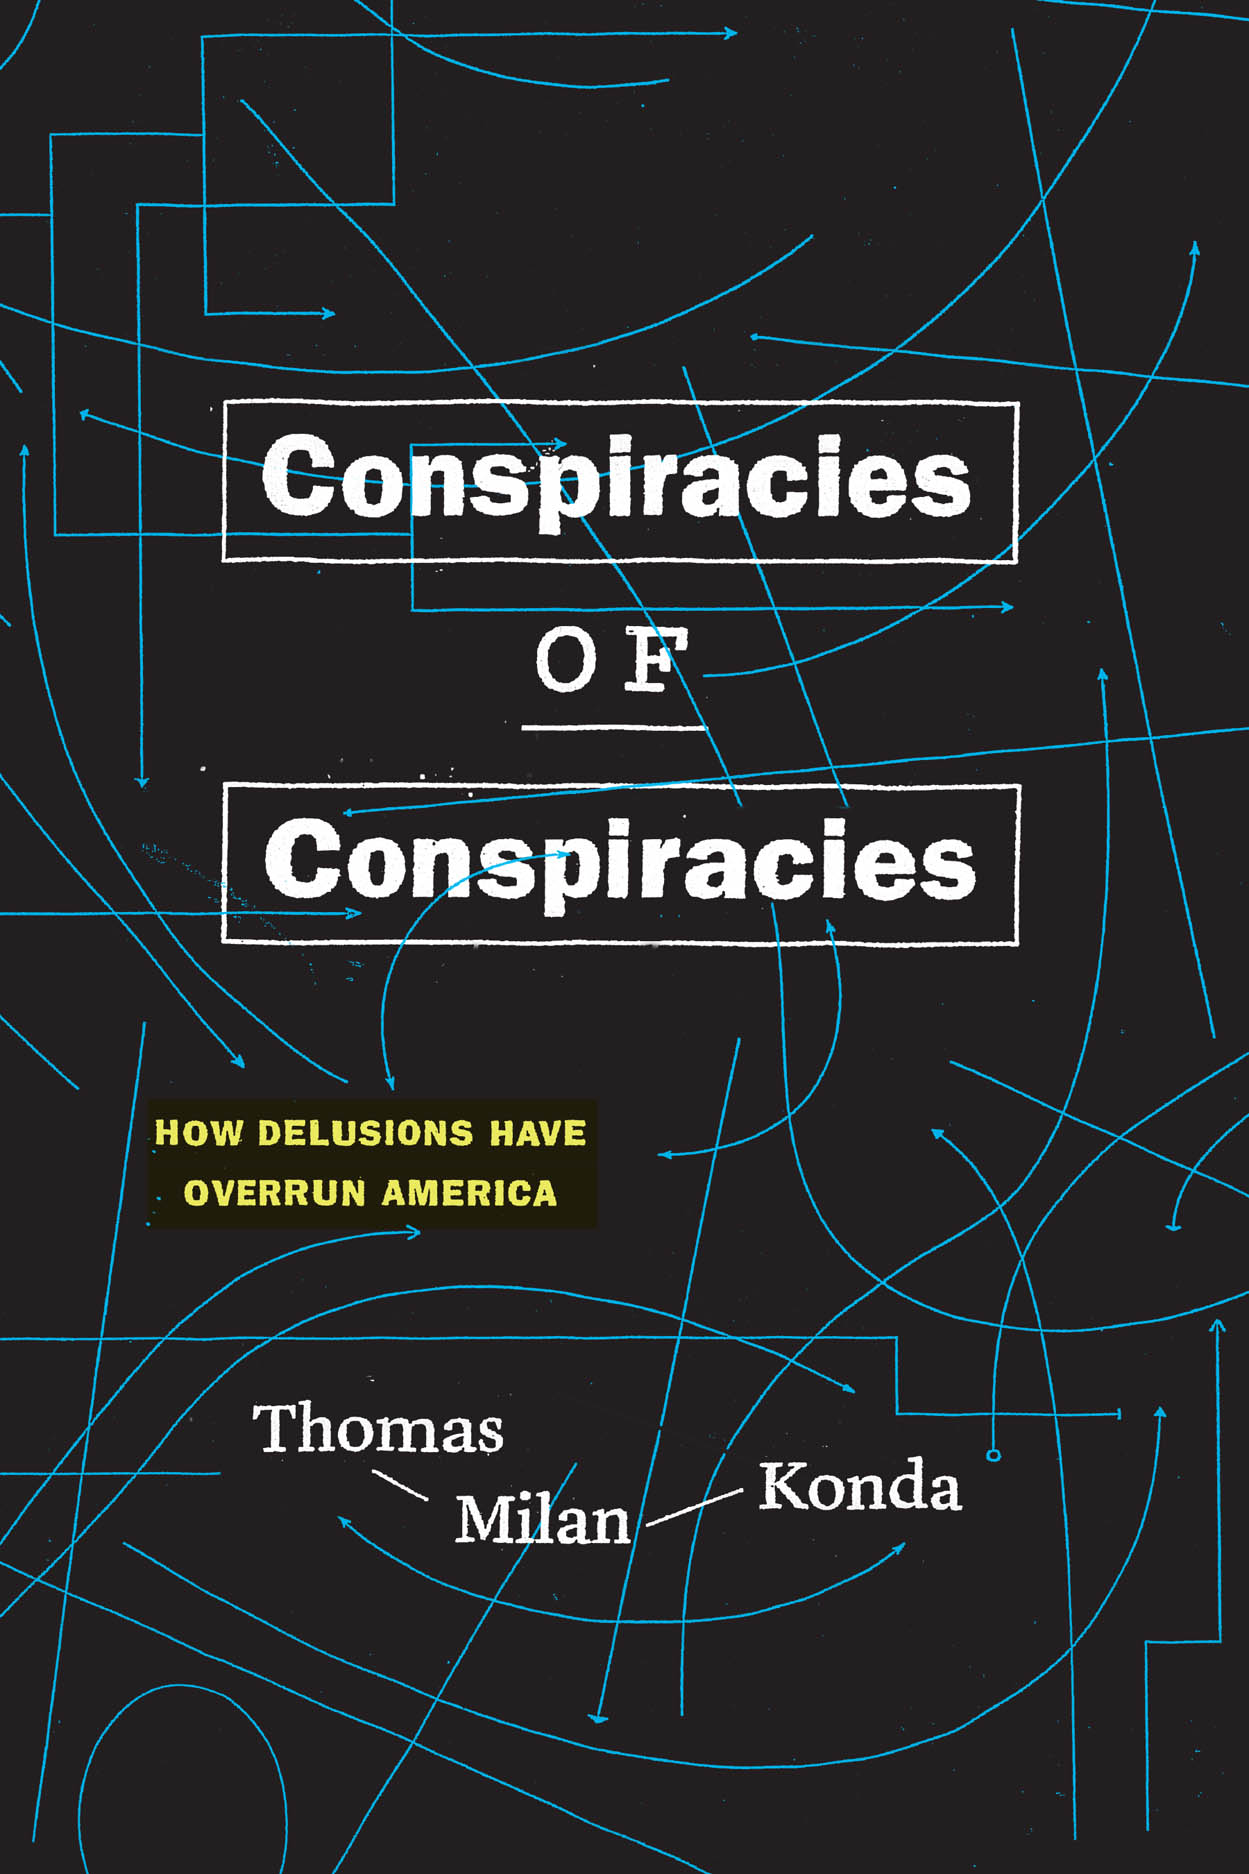 Conspiracies of Conspiracies: How Delusions Have Overrun America